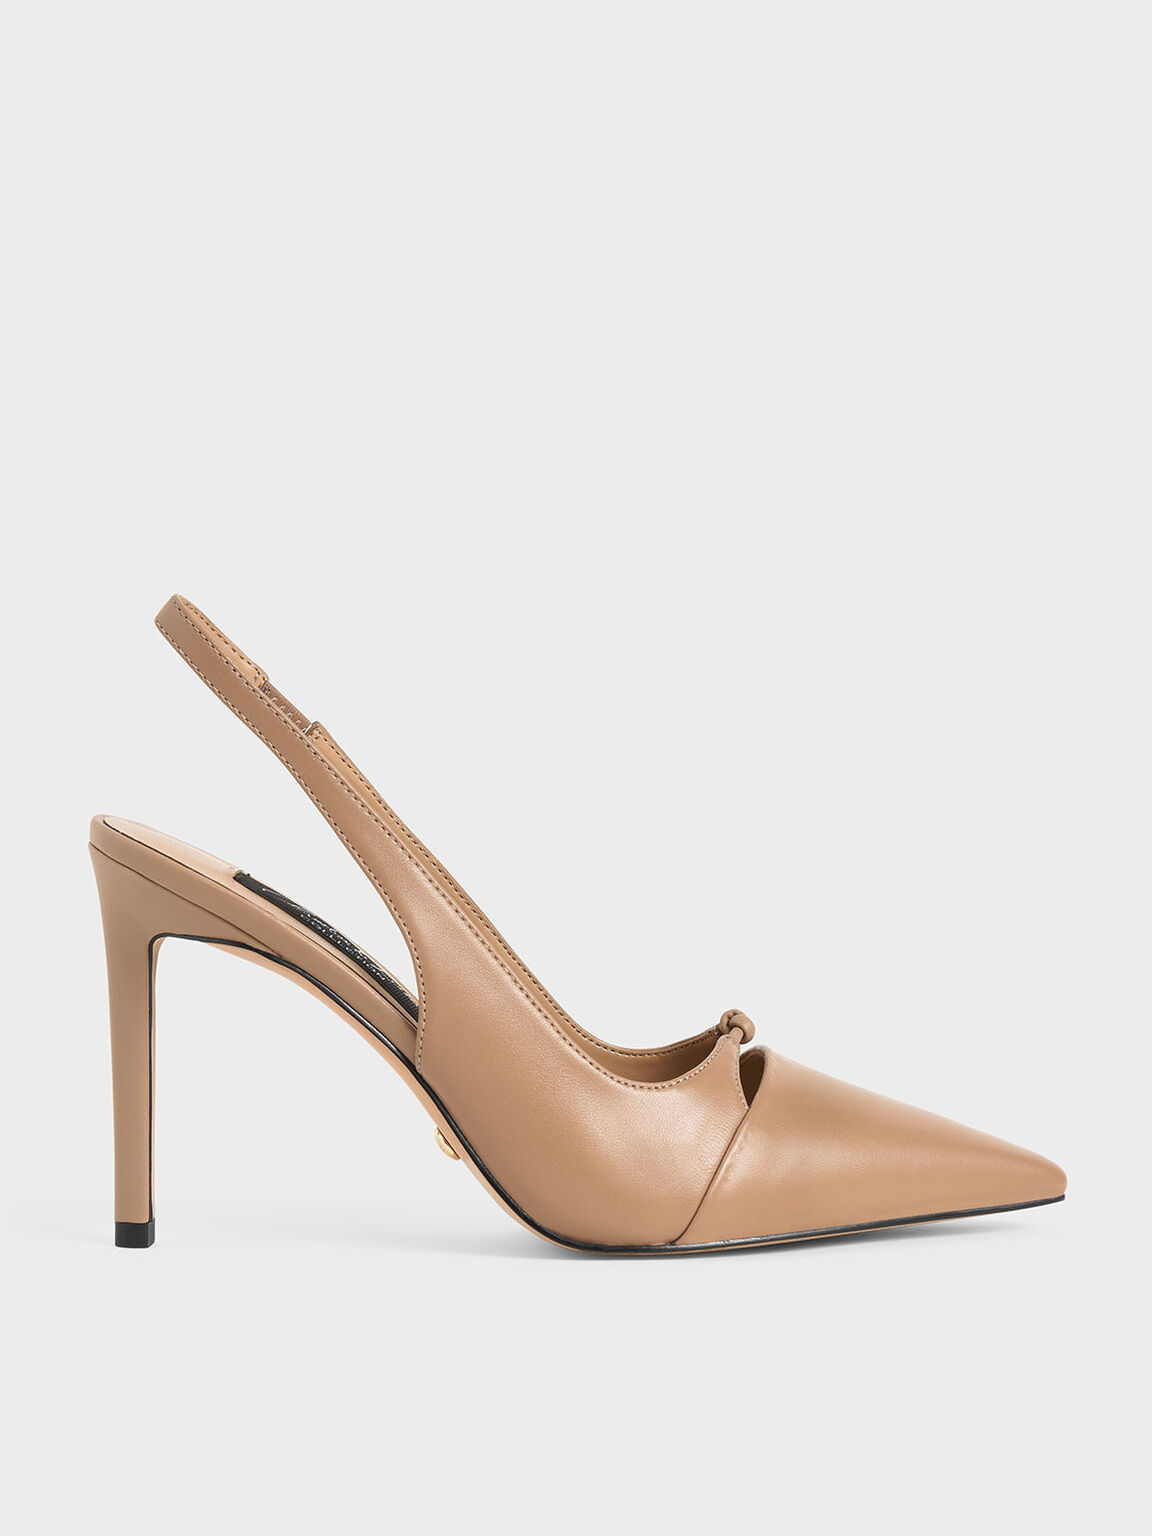 Leather Stiletto Heel Slingback Pumps, Nude, hi-res